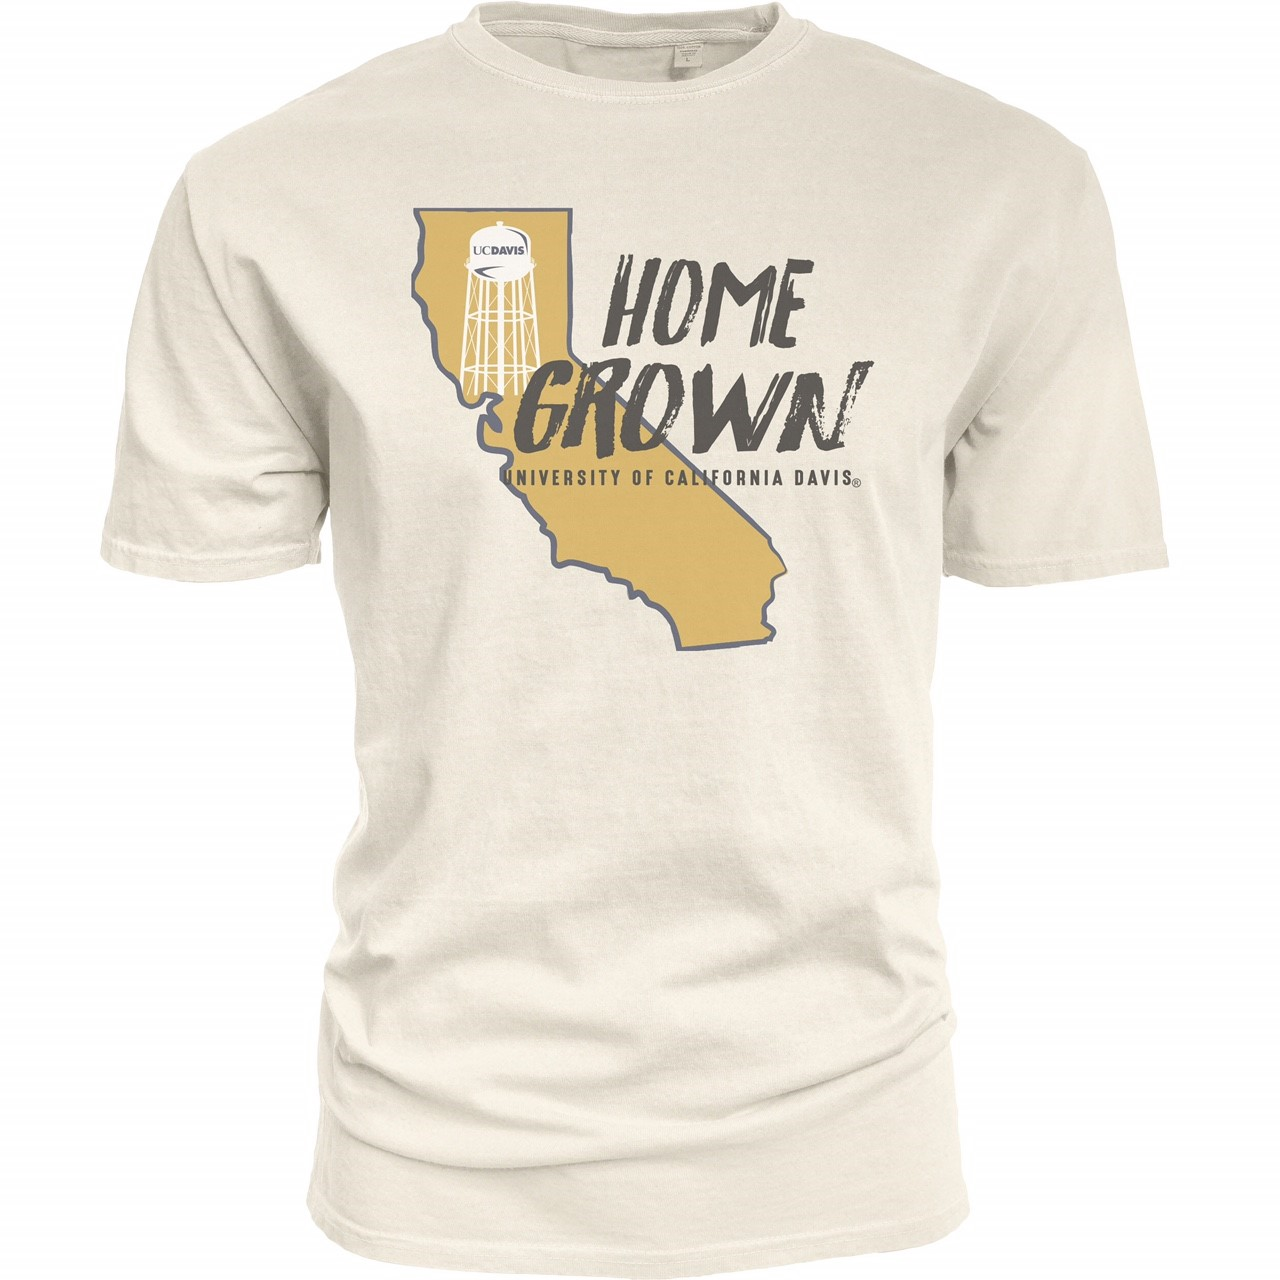 Cover Image For Blue 84 UC Davis Home Grown T-Shirt White